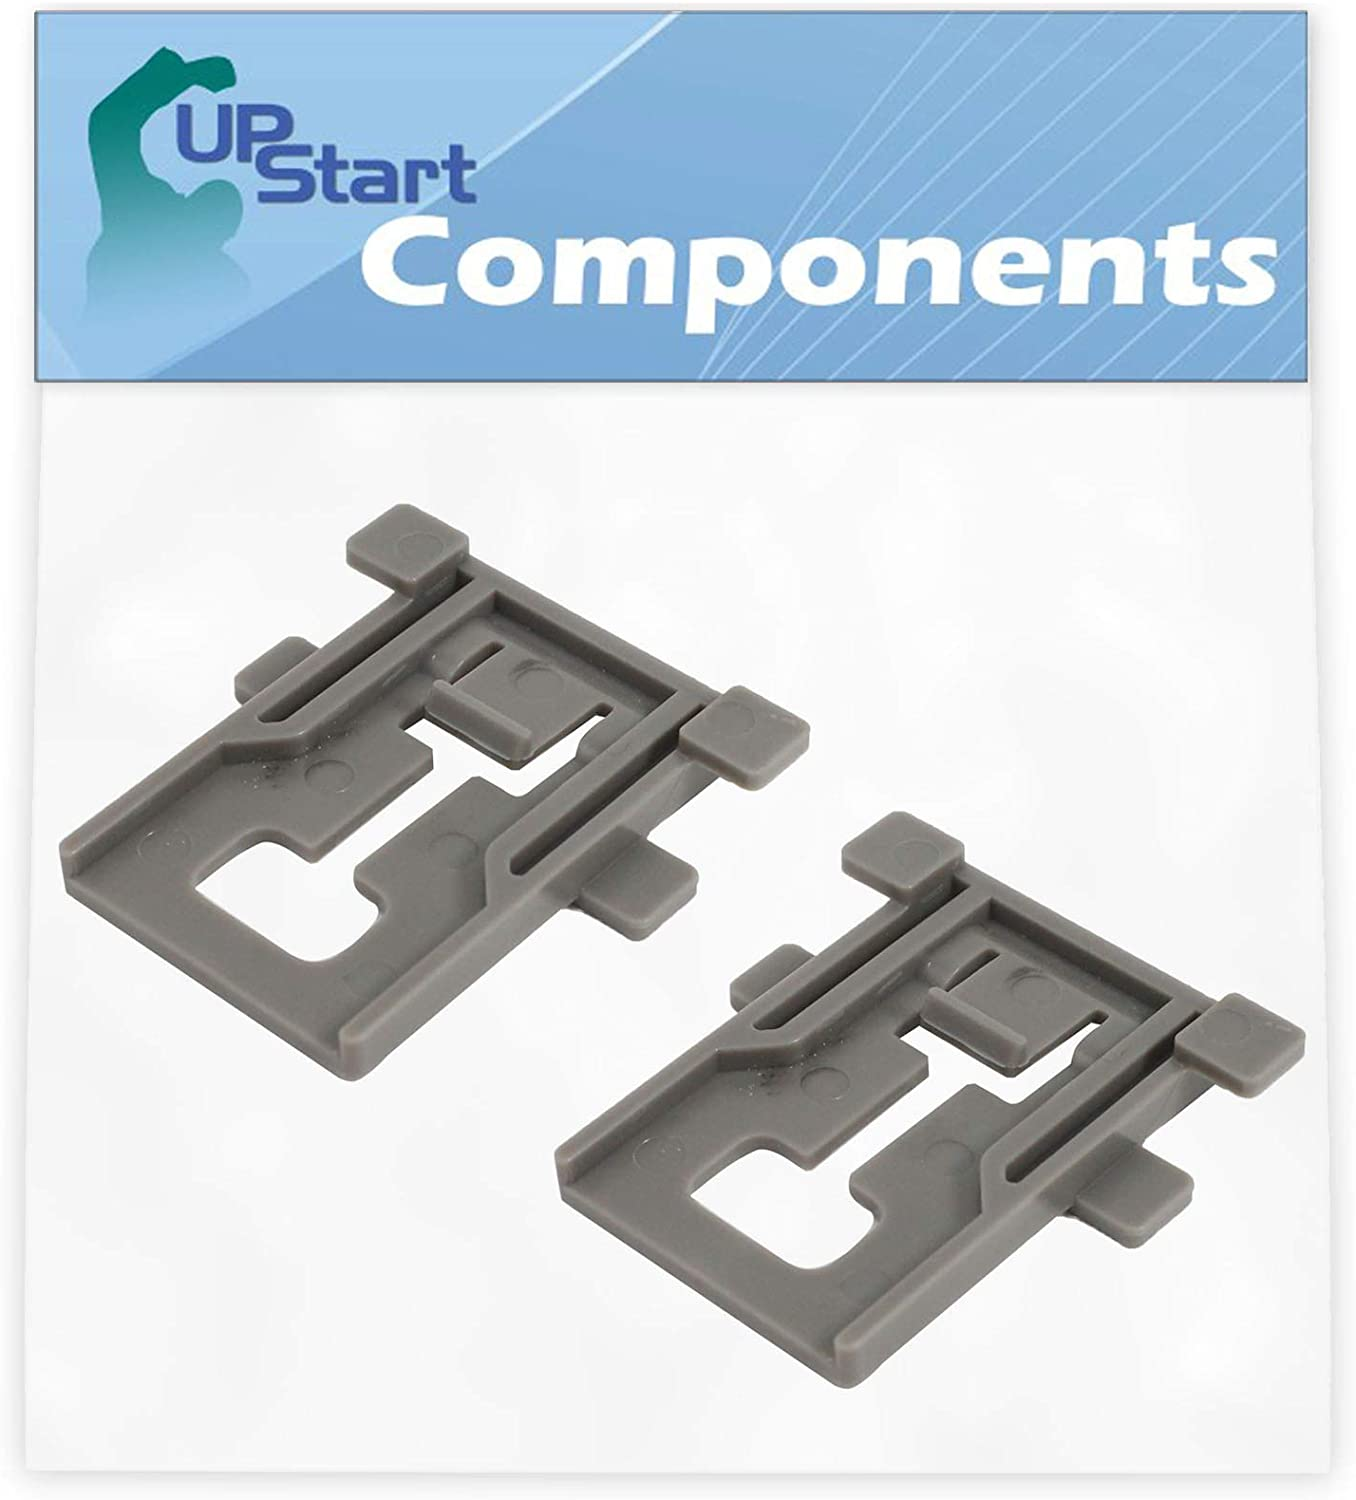 2-Pack W10195840 Dishwasher Rack Adjuster Replacement for Kenmore/Sears 665.12813K313 Dishwasher - Compatible with WPW10195840 Top Rack Adjuster